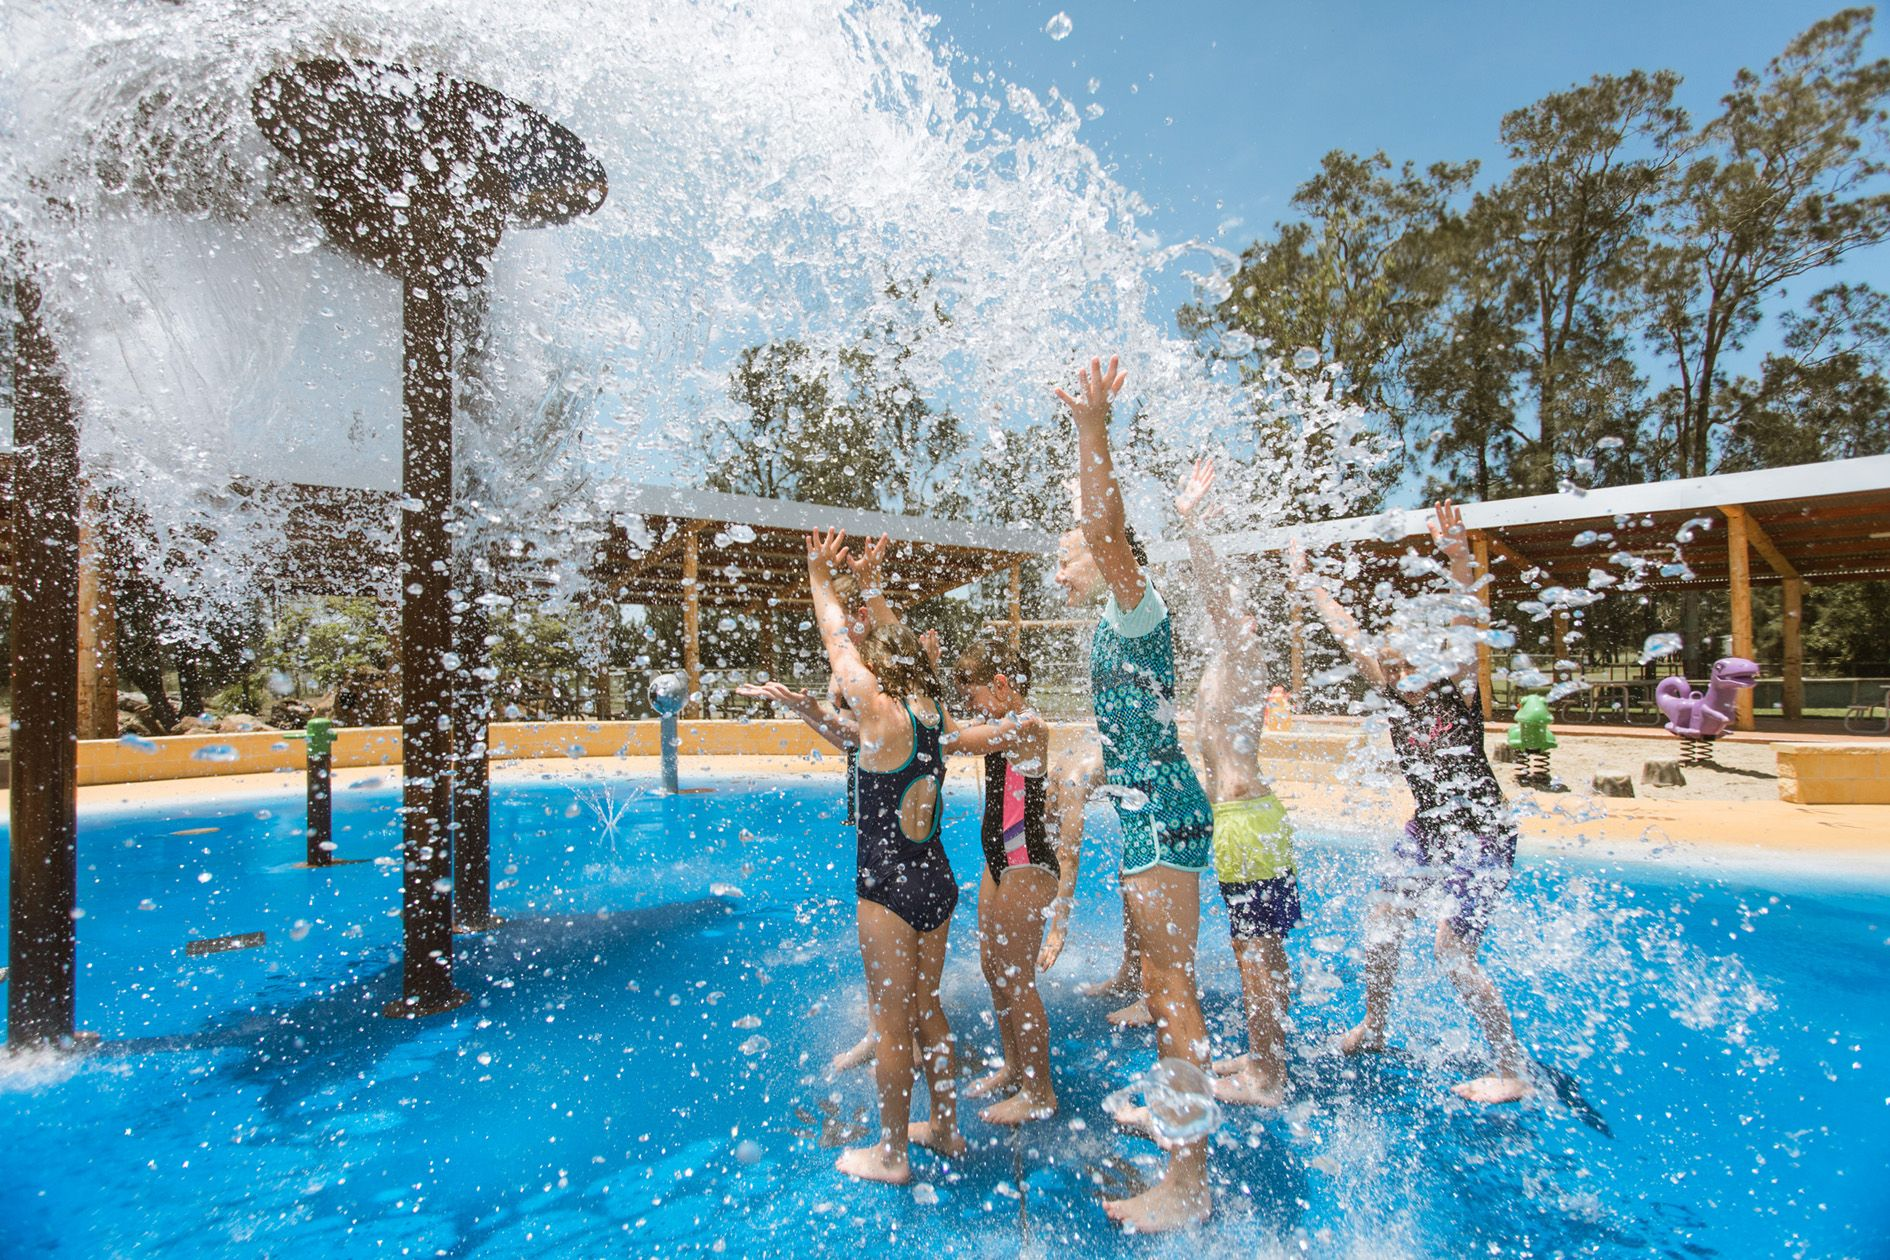 The blue water holiday centre of Port Stephens, is renowned for its beautiful bays such as Nelson Bay, Shoal Bay, Fingal Bay and Salamander Bay. And now Port Stephens boasts a new bay – Splash Bay – a water park attraction that officially opened at Oakvale Farm and Fauna World on January 7, 2017. Opening…